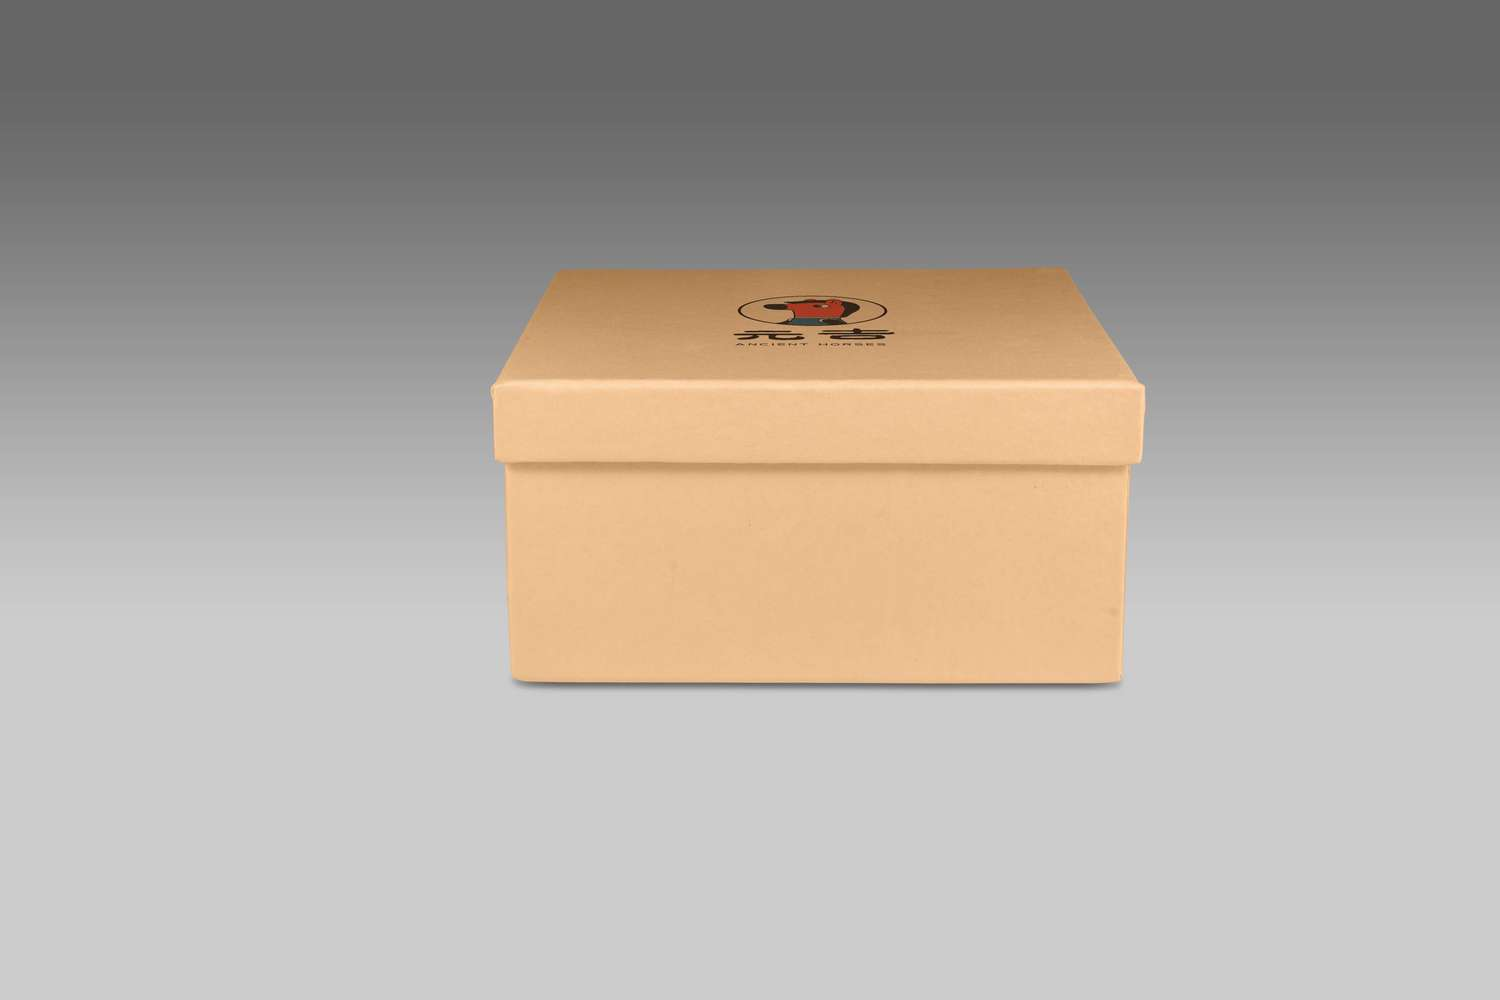 box and logo mockup vol 2 - 04.jpg